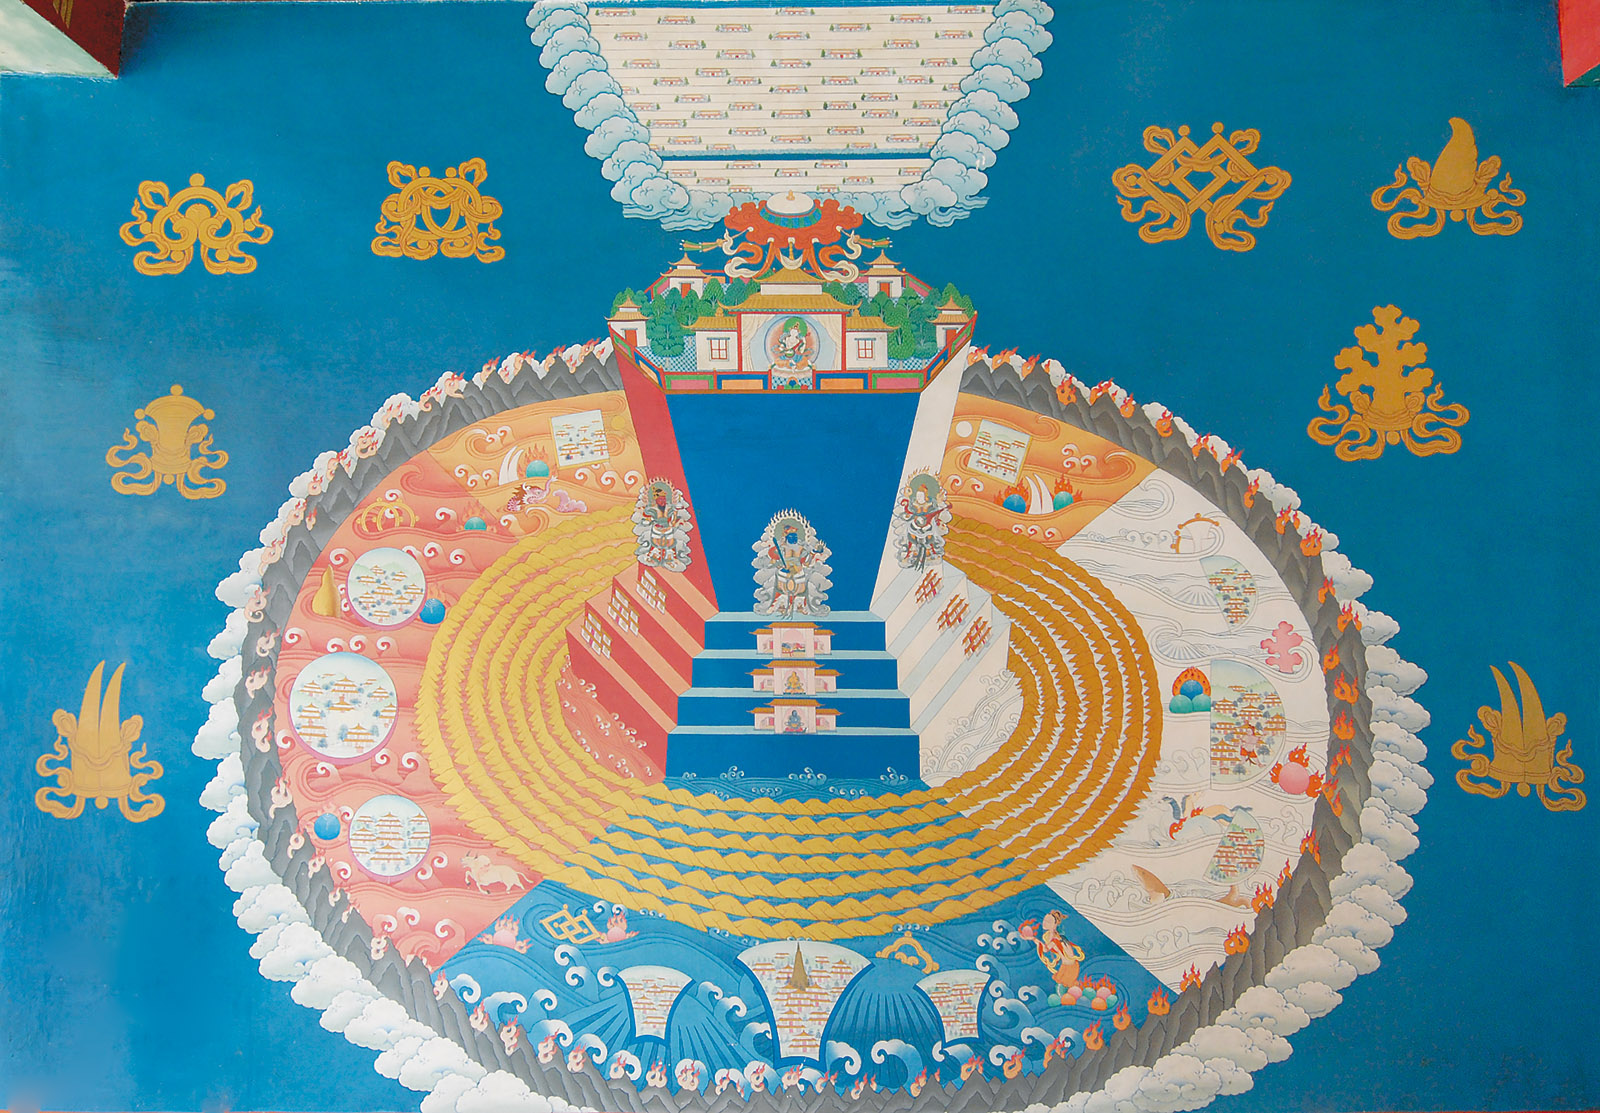 A mural showing the Cakravala cosmos